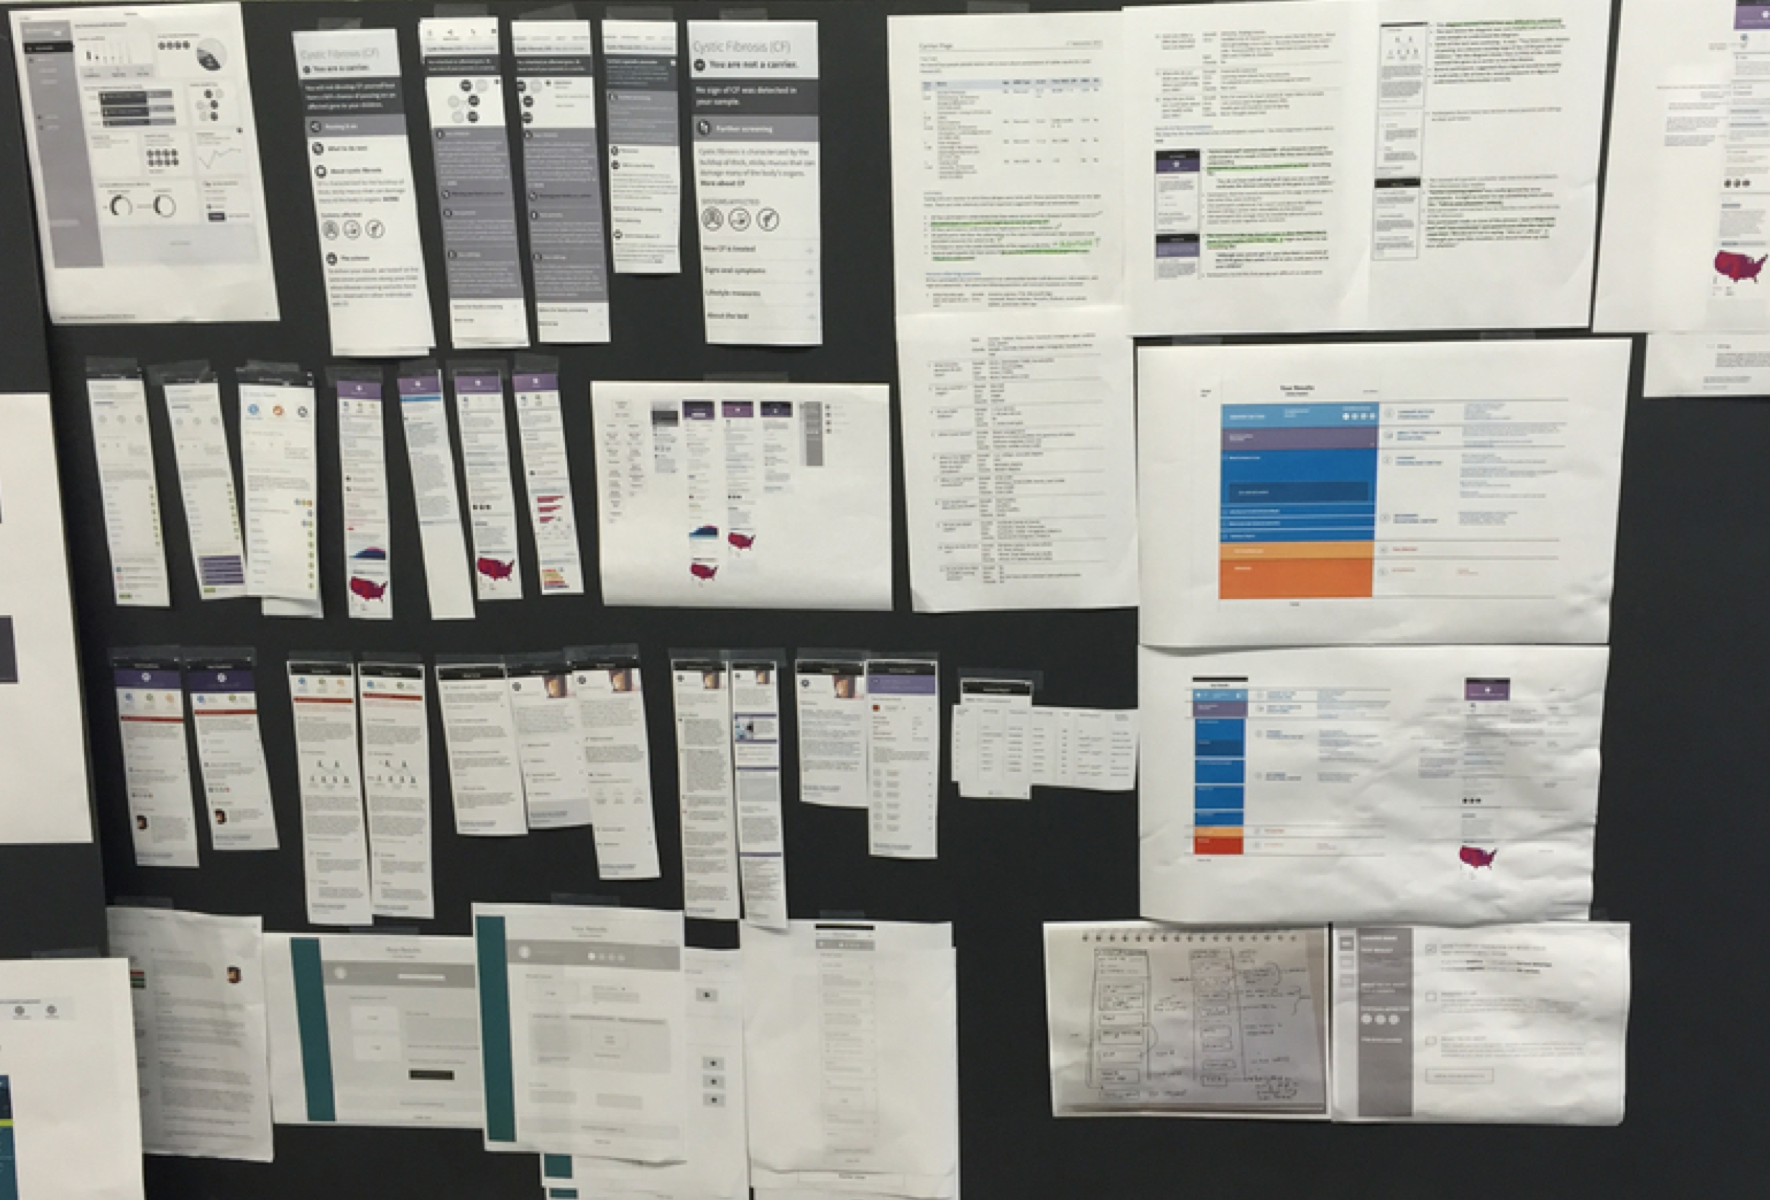 low fidelity mocks - This was our team board where we put up progress for critique and an office wall for stakeholders to comment on. It also helped see inconsistencies in design.